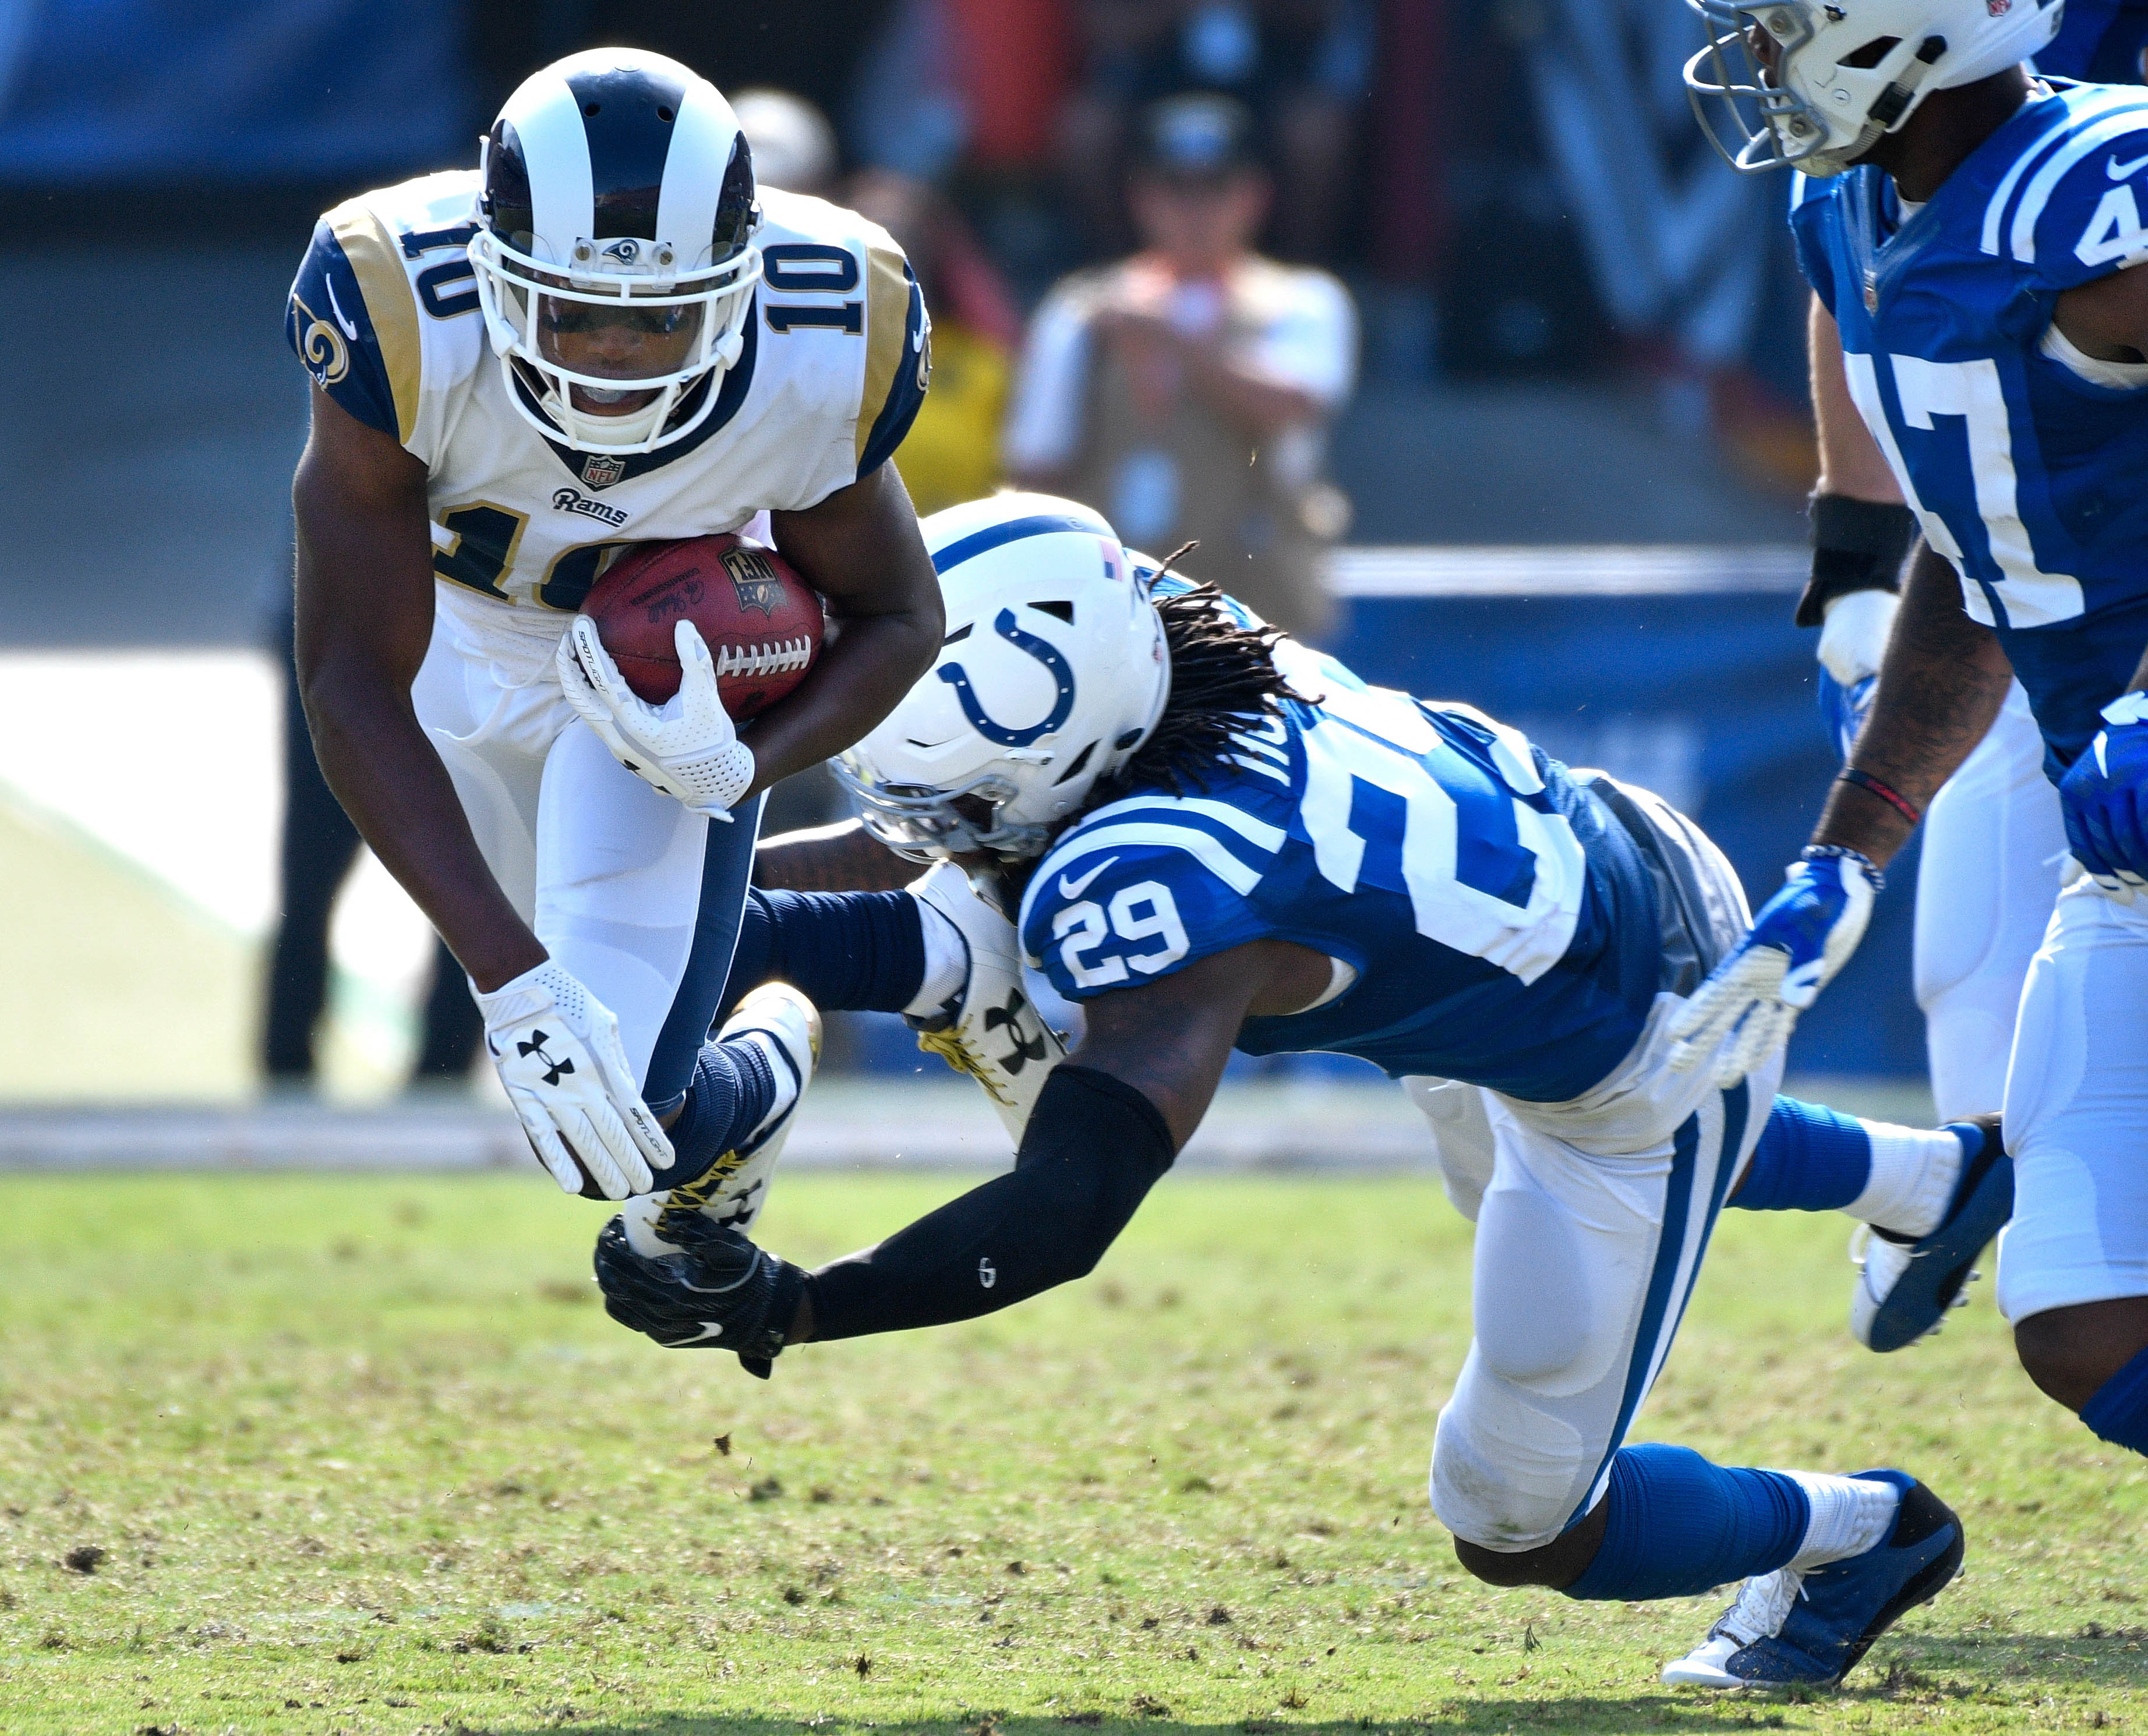 NFL: Indianapolis Colts at Los Angeles Rams